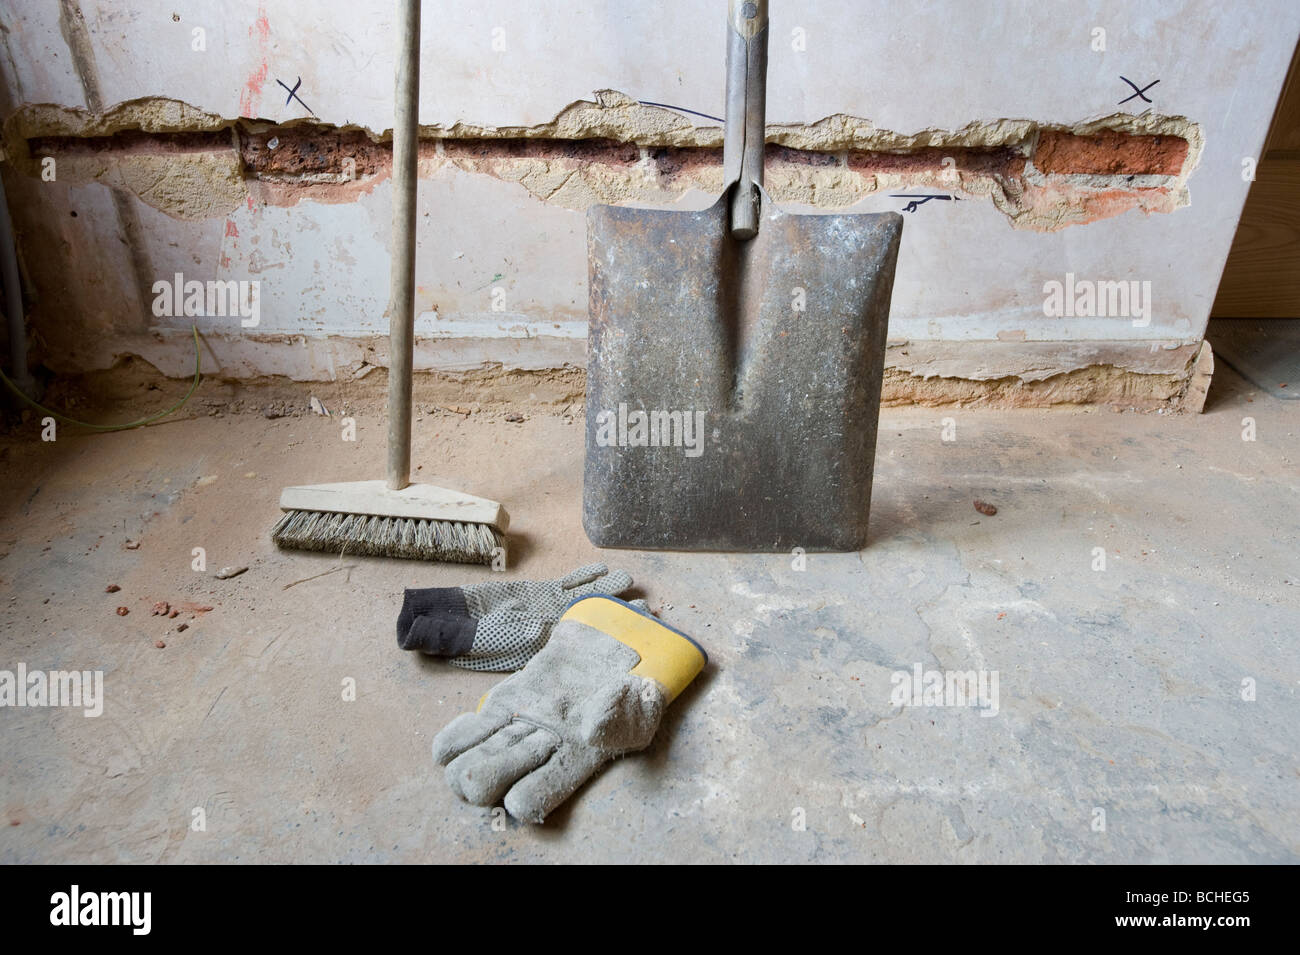 SHOVEL BRUSH AND GLOVES ON FLOOR OF A CONSTRUCTION SITE DURING REFURBISHMENT. - Stock Image